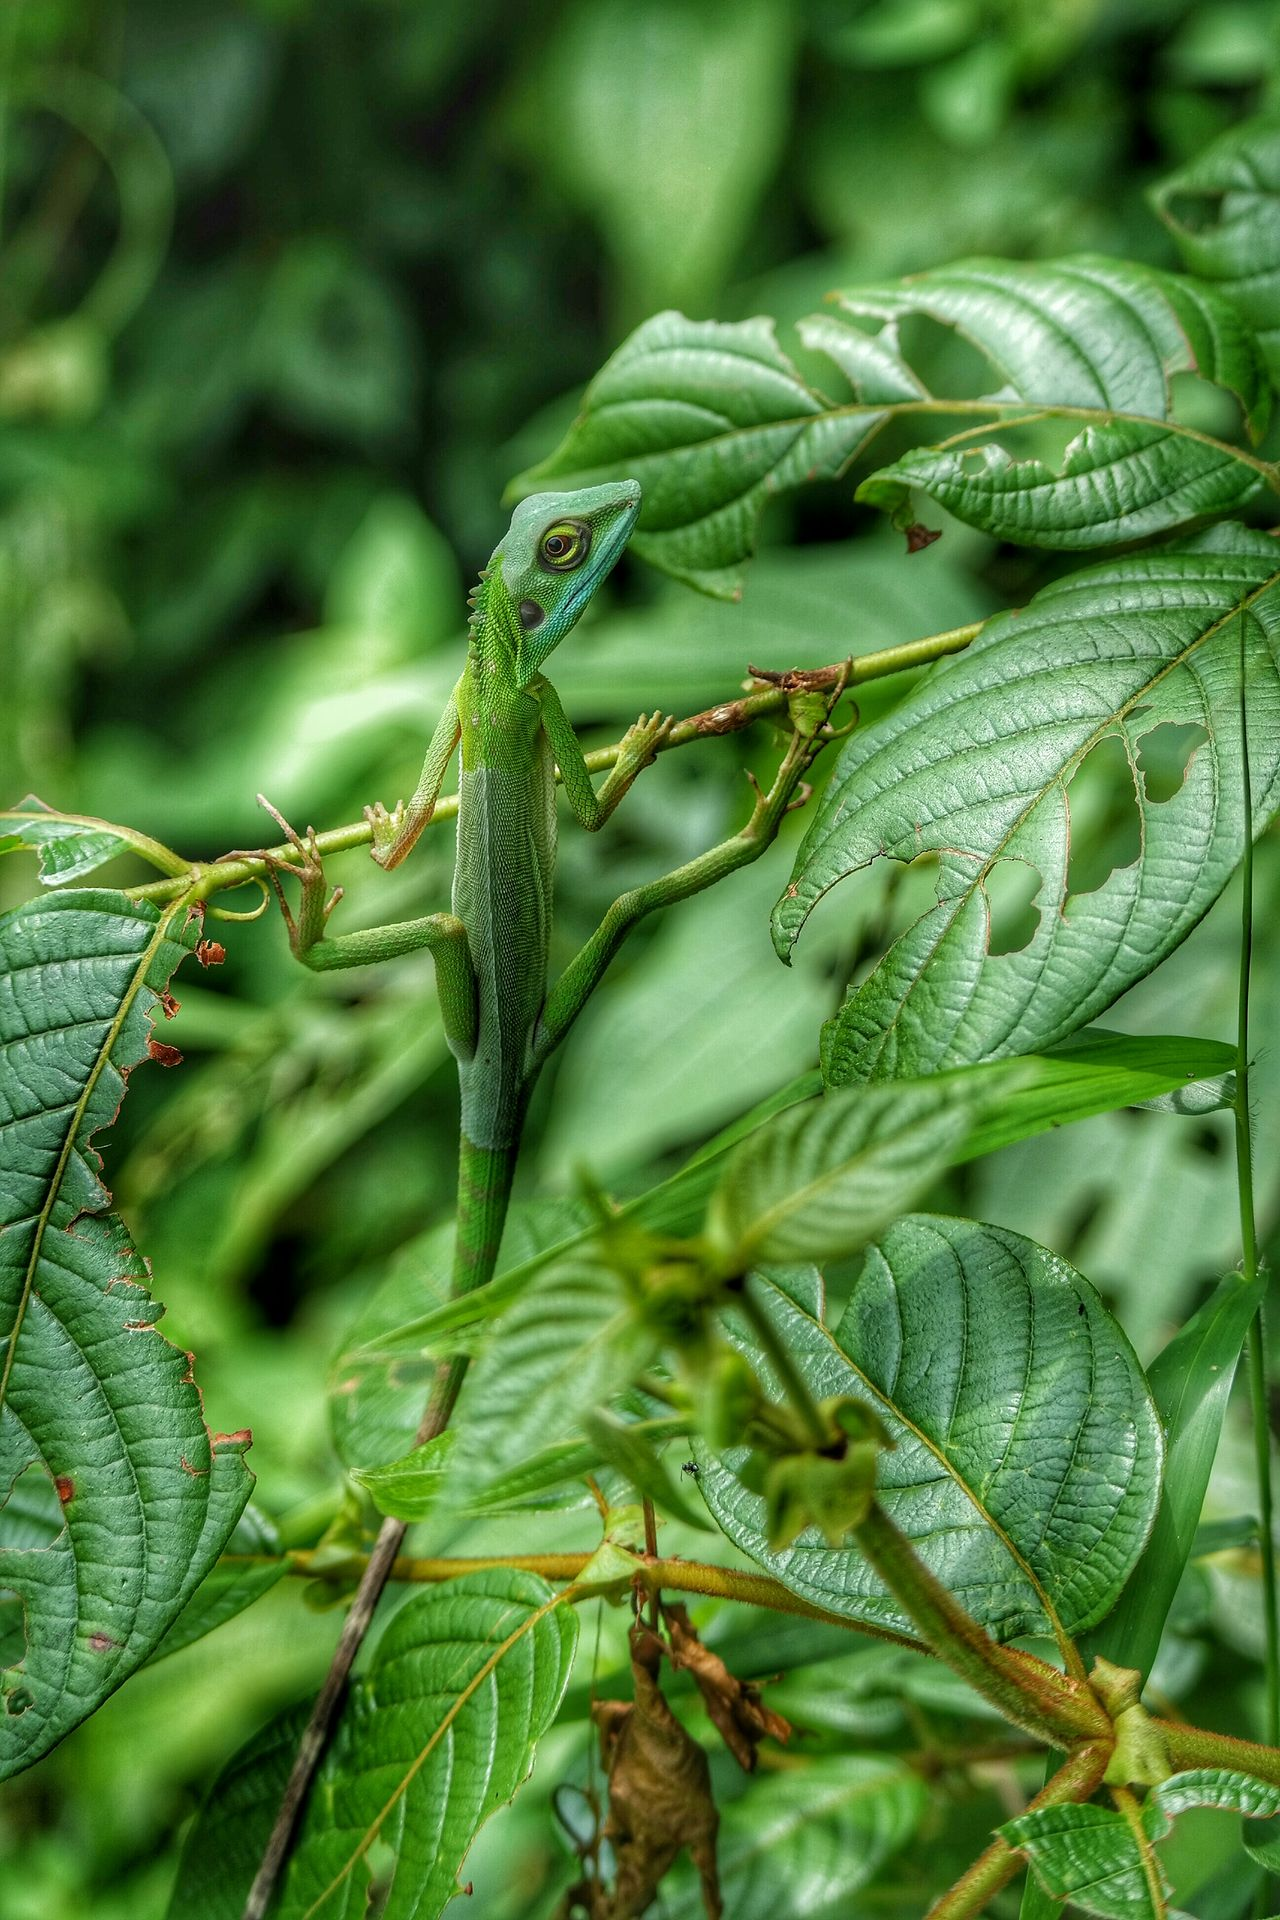 Long Tailed Green Lizard Lizard Lizards Lizard Watching EyeEm Nature Lover Eyeem Lizards EyeEm Best Shots - Nature EyeEmBestPics EyeEm Malaysia Capture The Moment